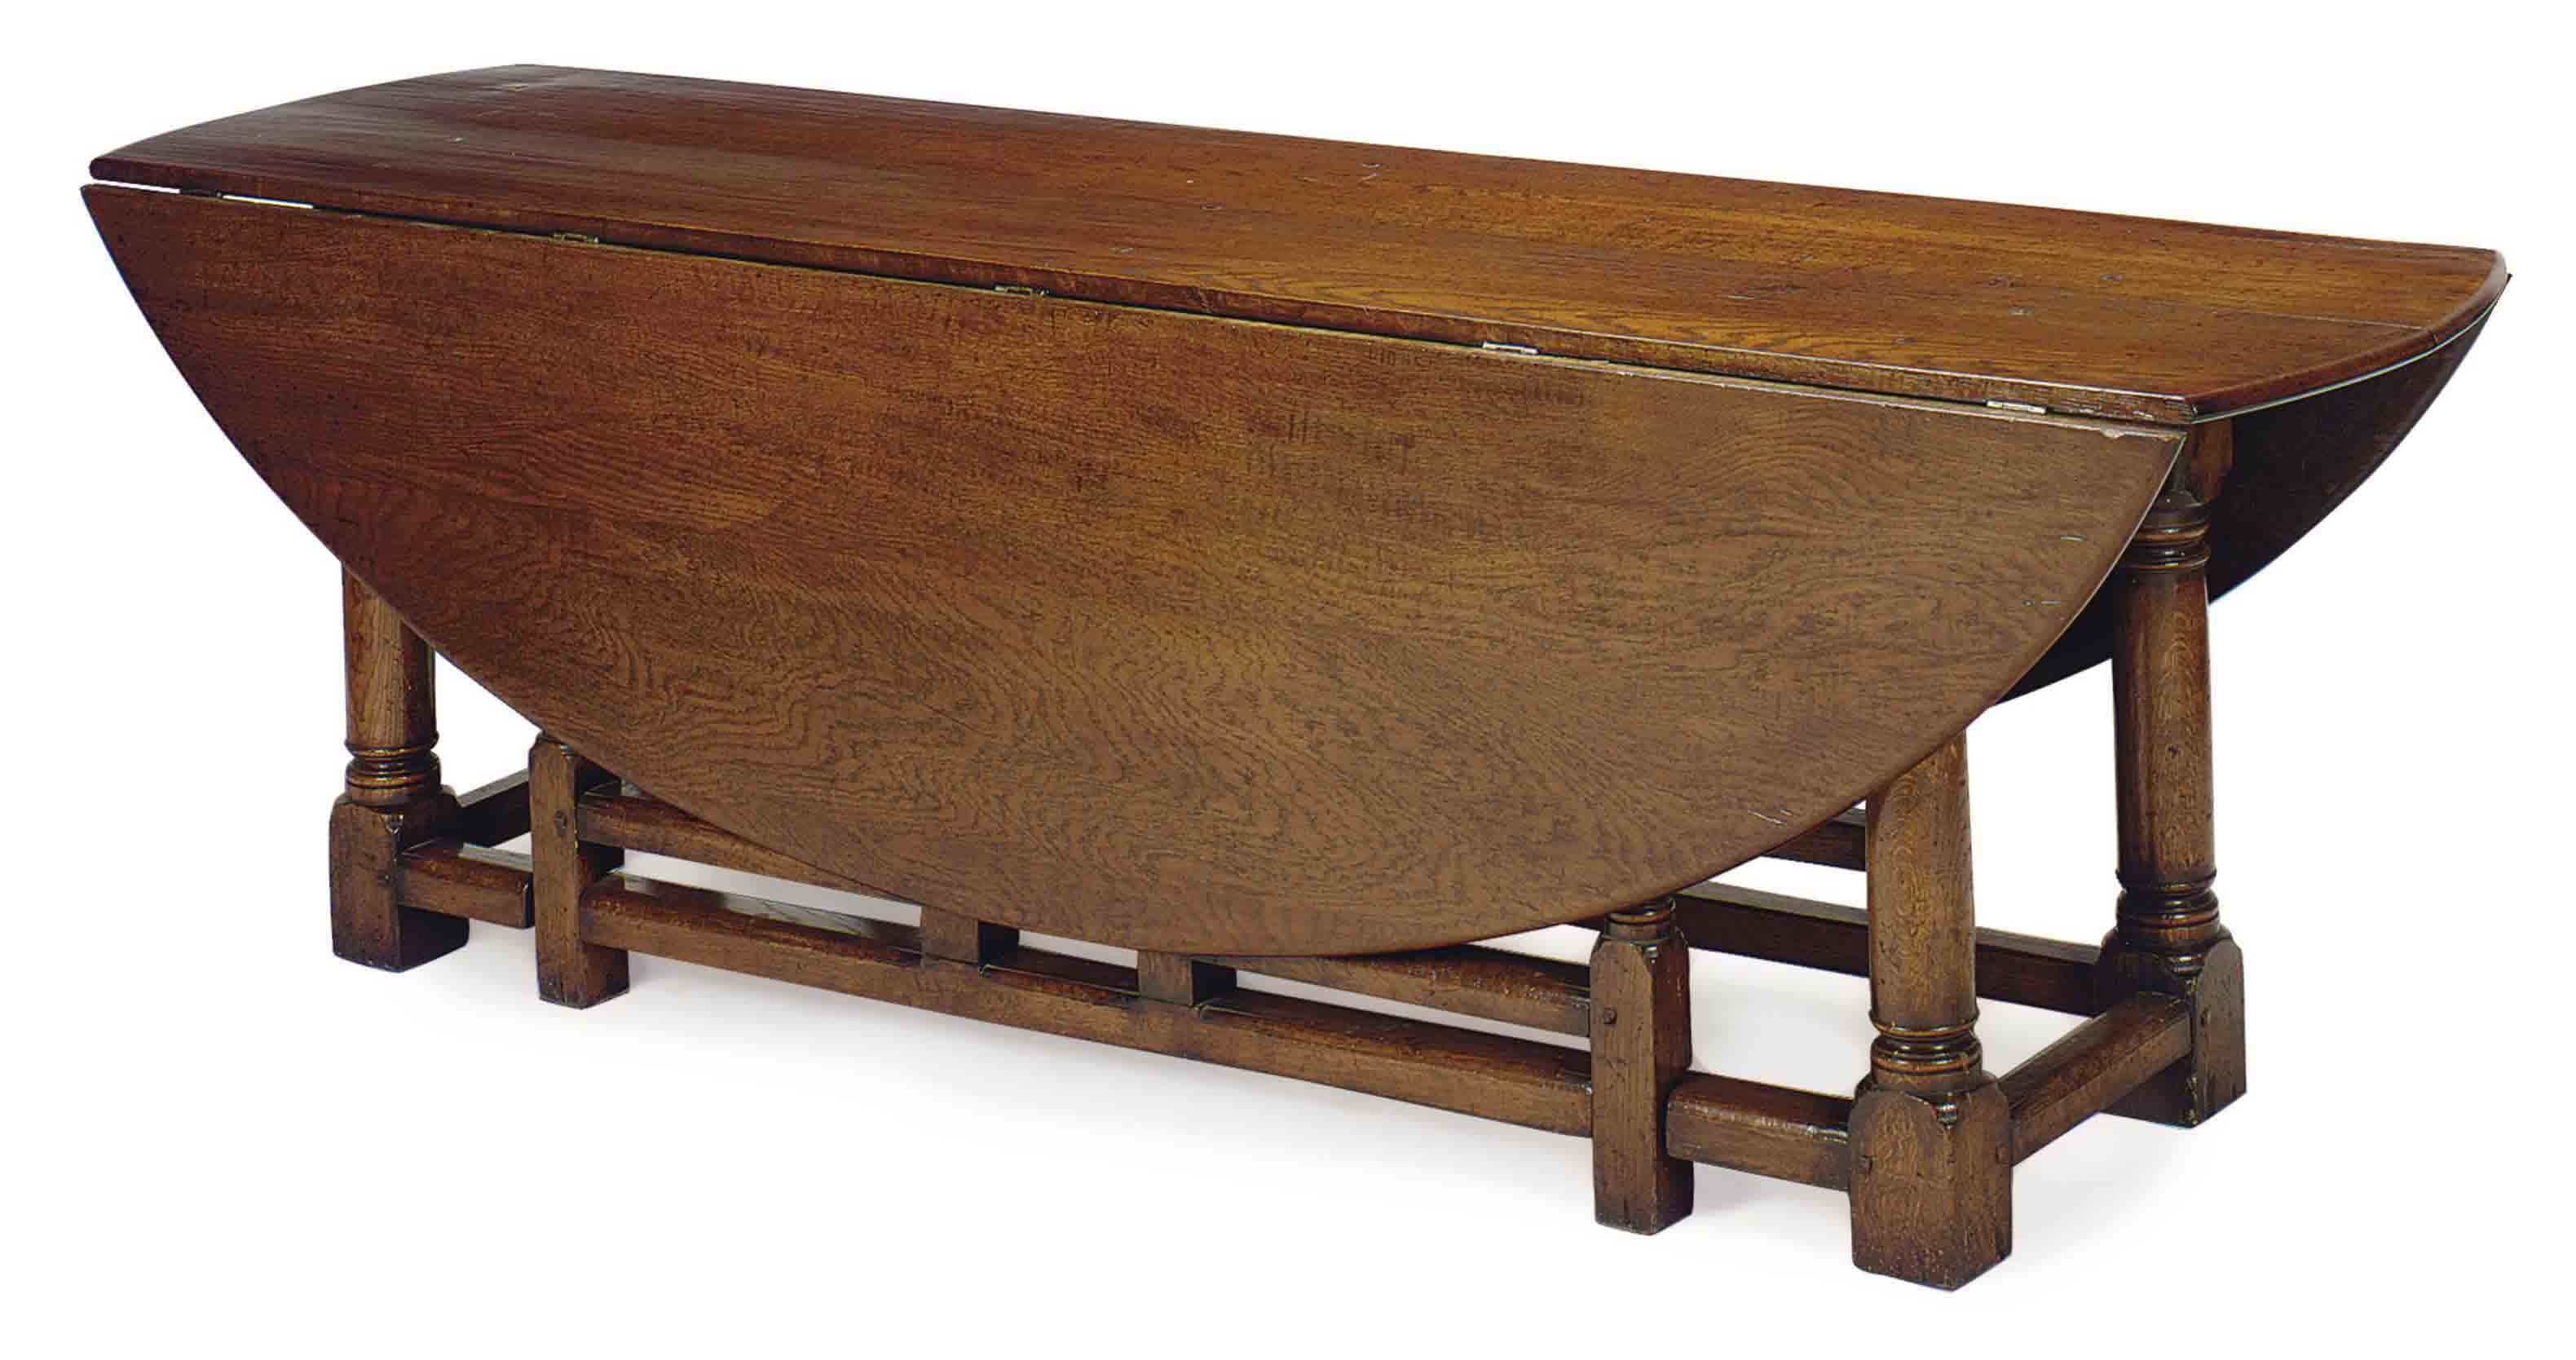 AN ITALIAN OAK DROP-LEAF DINING TABLE,